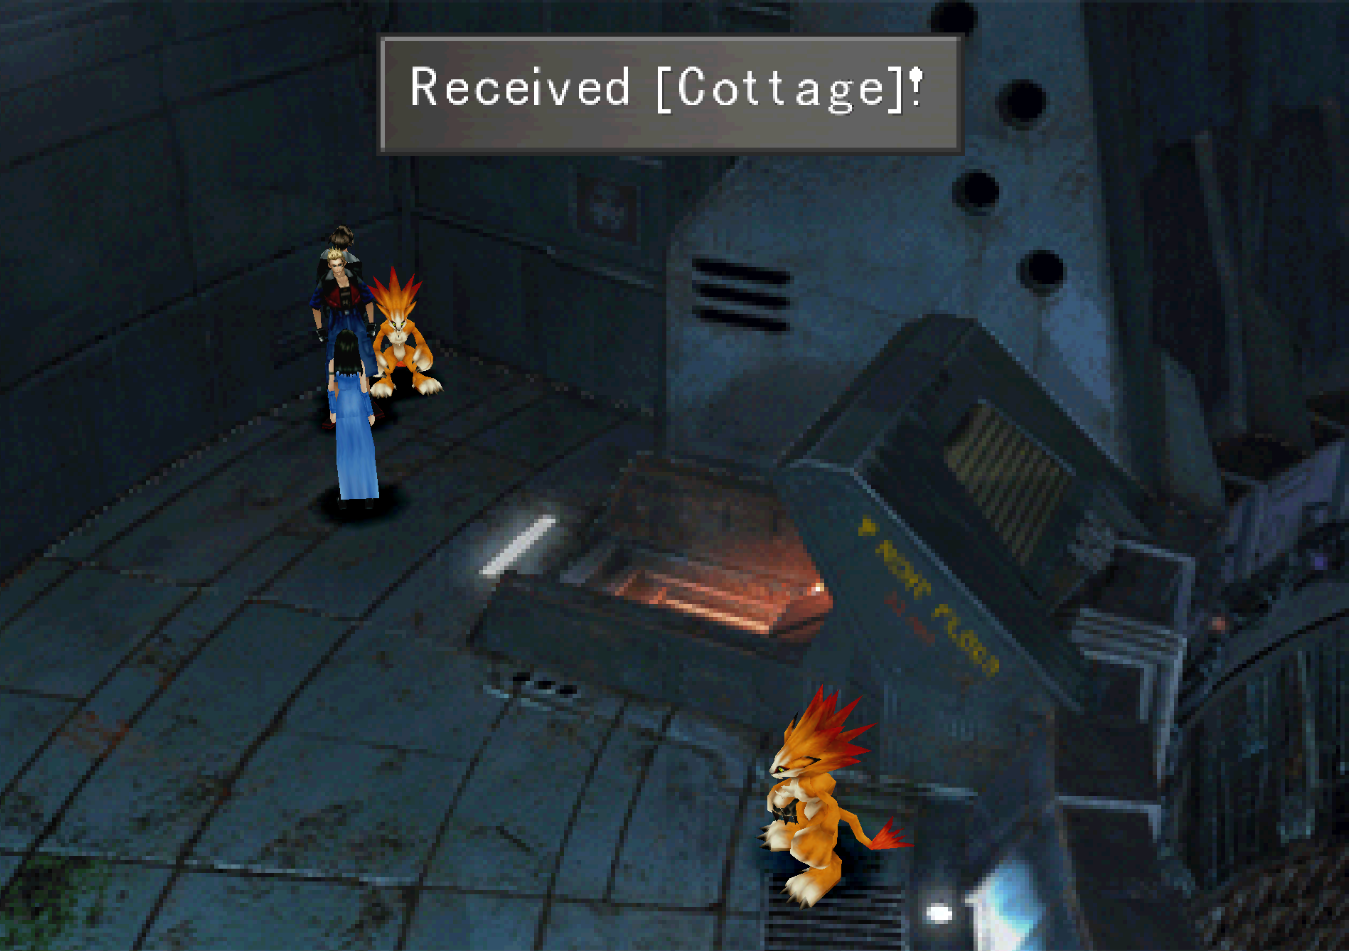 FF8 Cottage Received